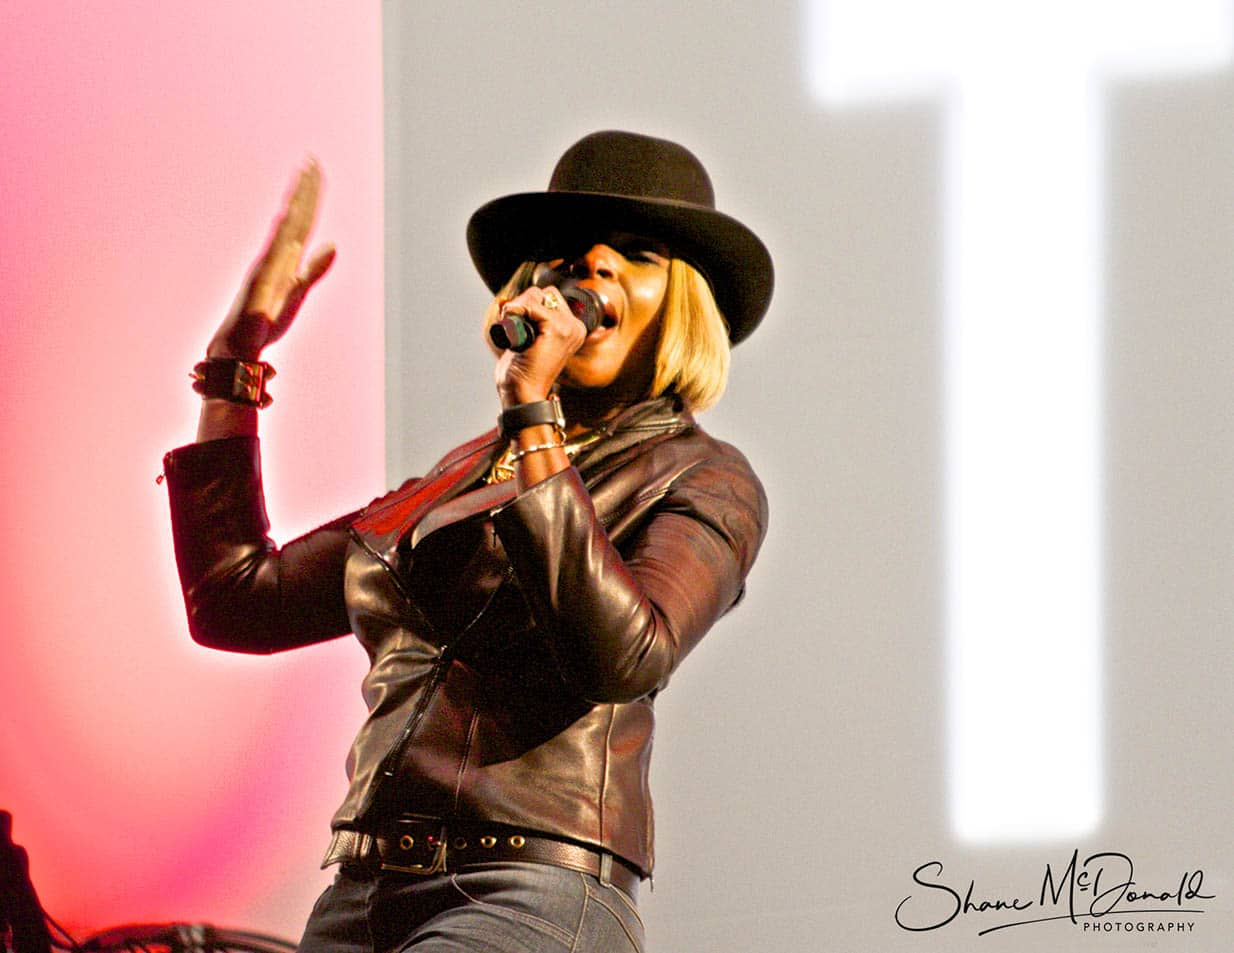 Mary J. Blige at Glastonbury - Event Photography